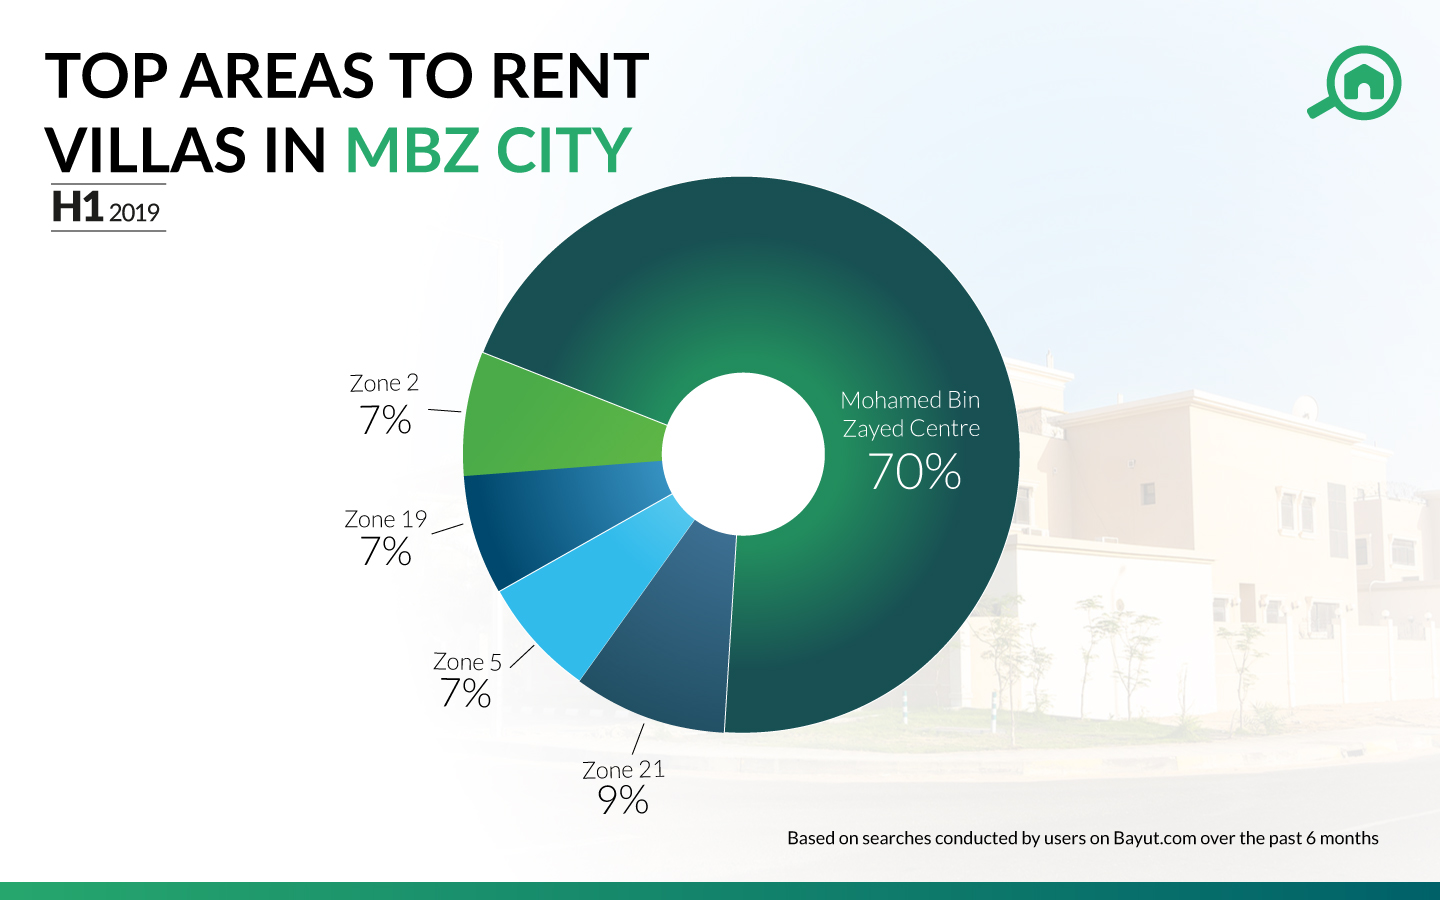 Most popular areas with flats for rent in MBZ City